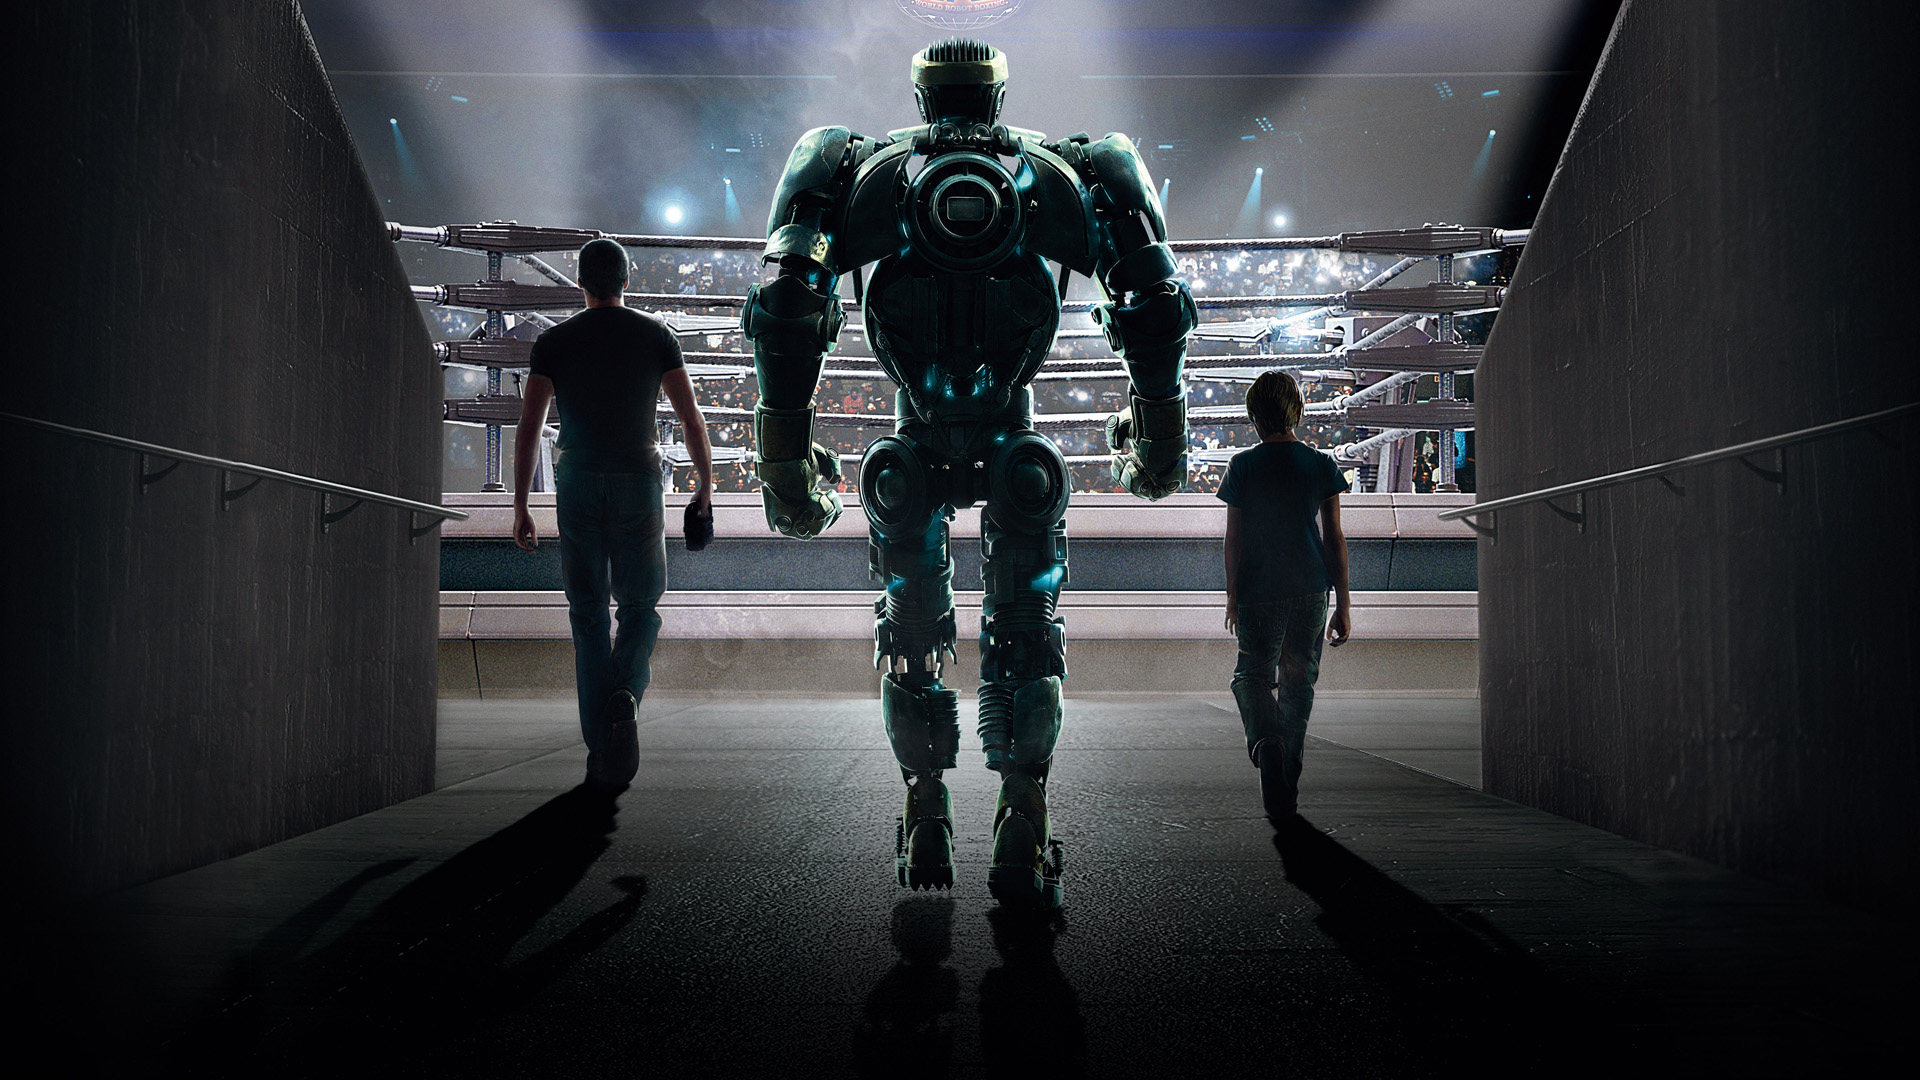 REAL STEEL robot mecha wallpaper background 1920x1080